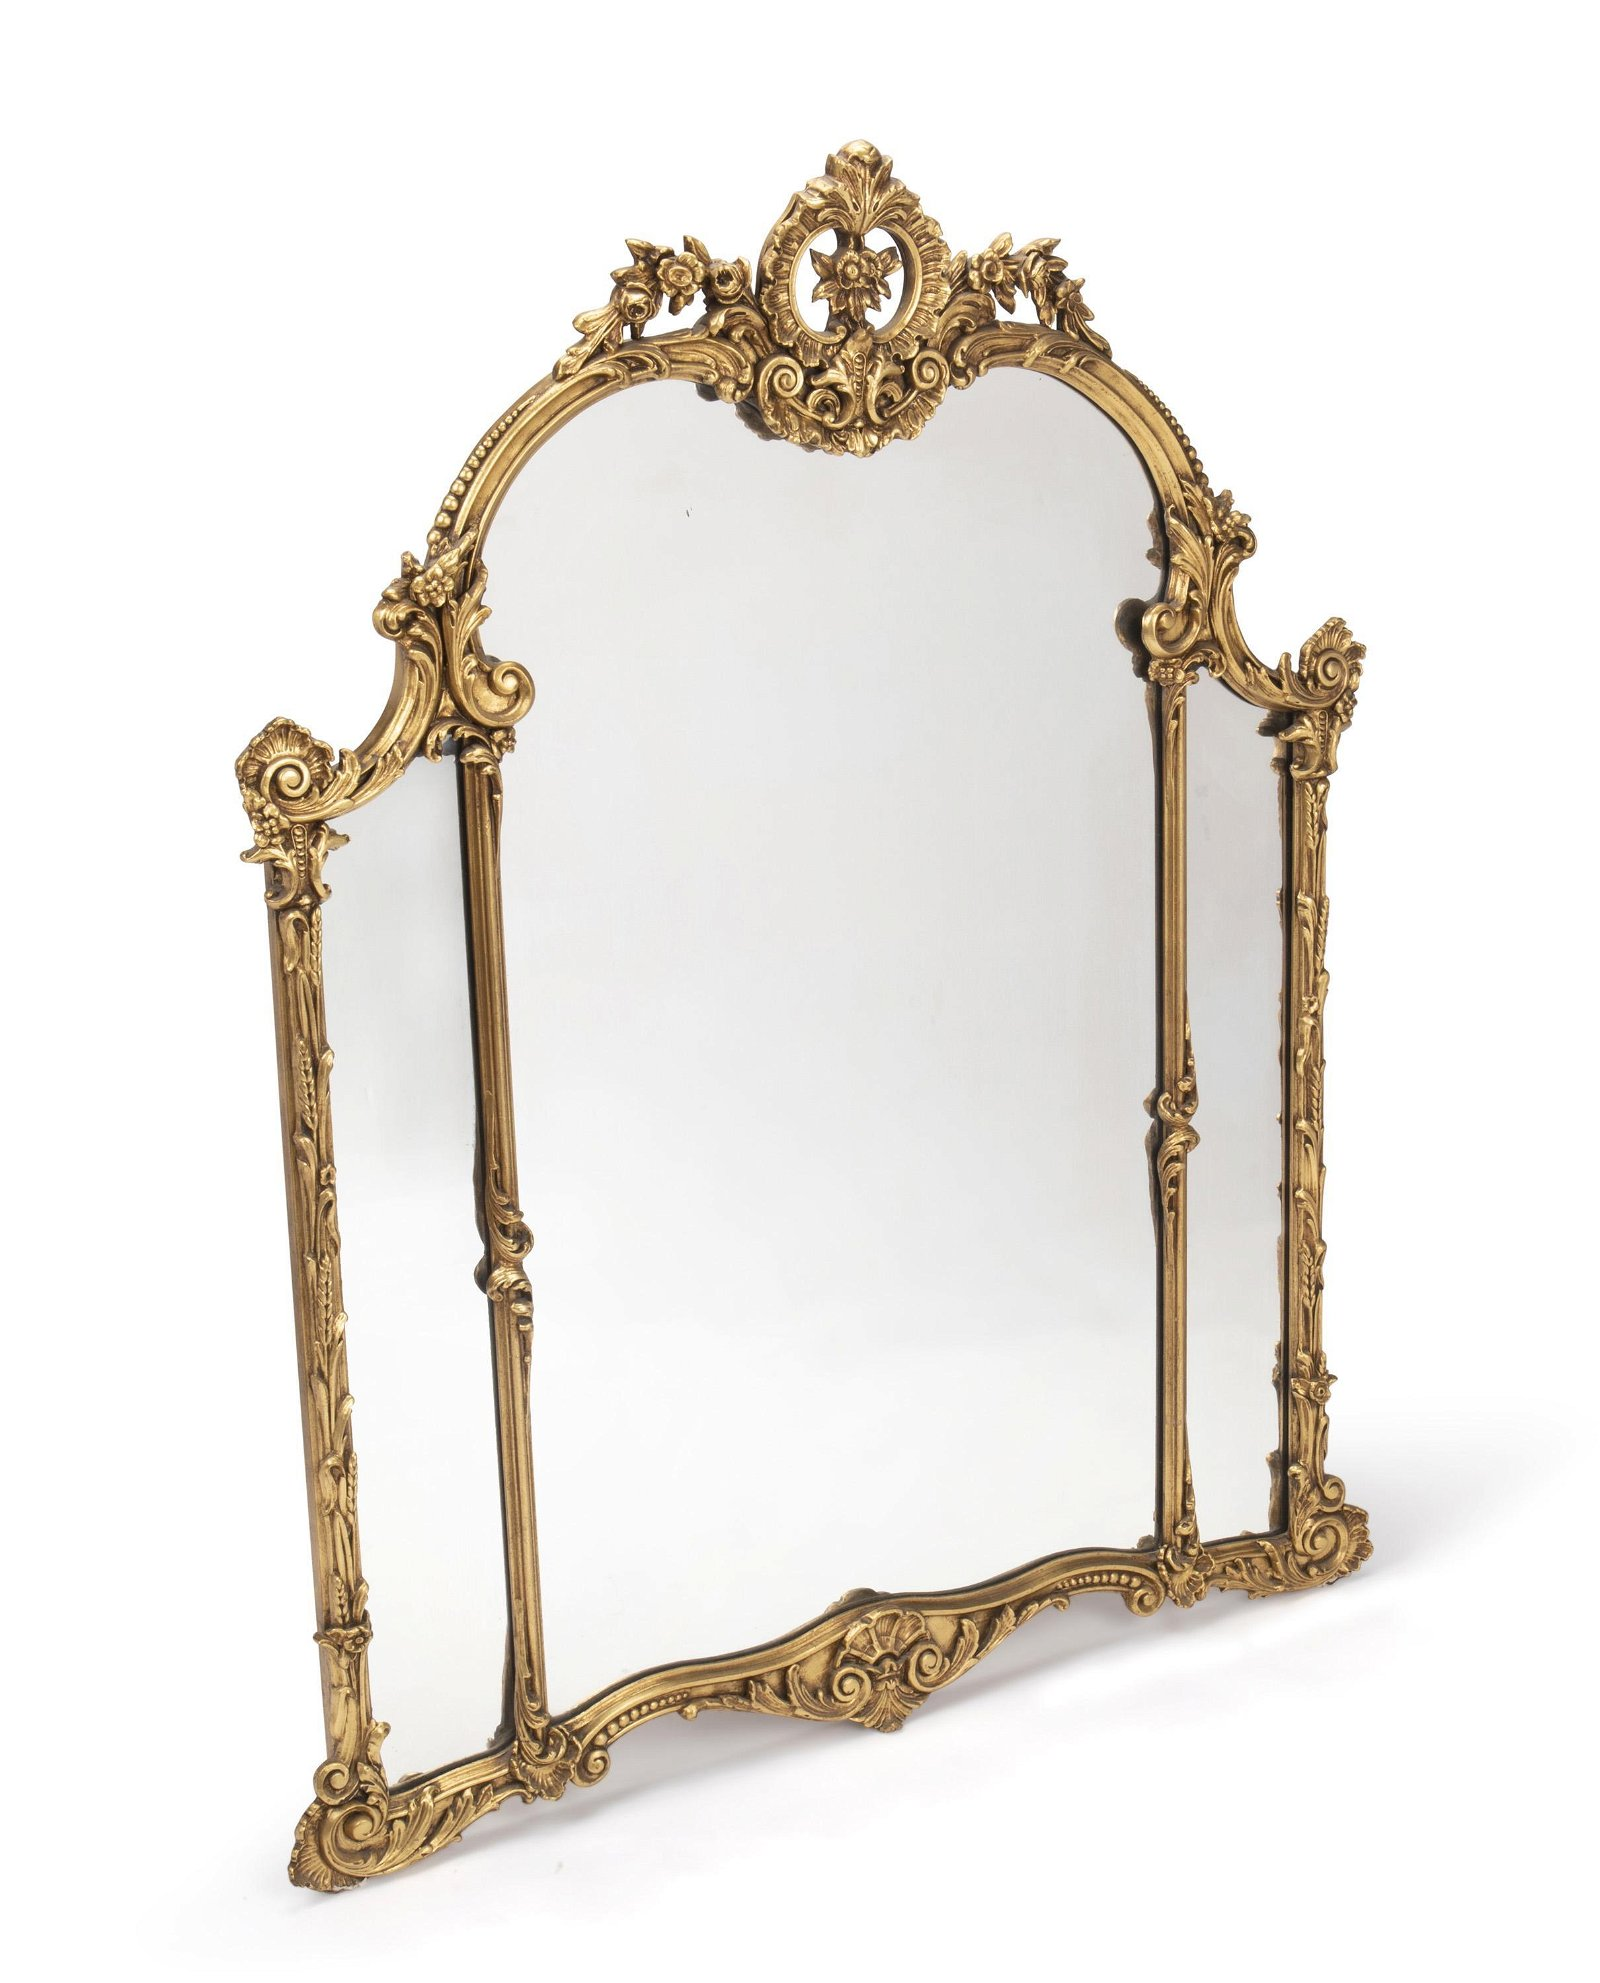 A Carved Wood, Gesso, And Gilt Wall Mirror